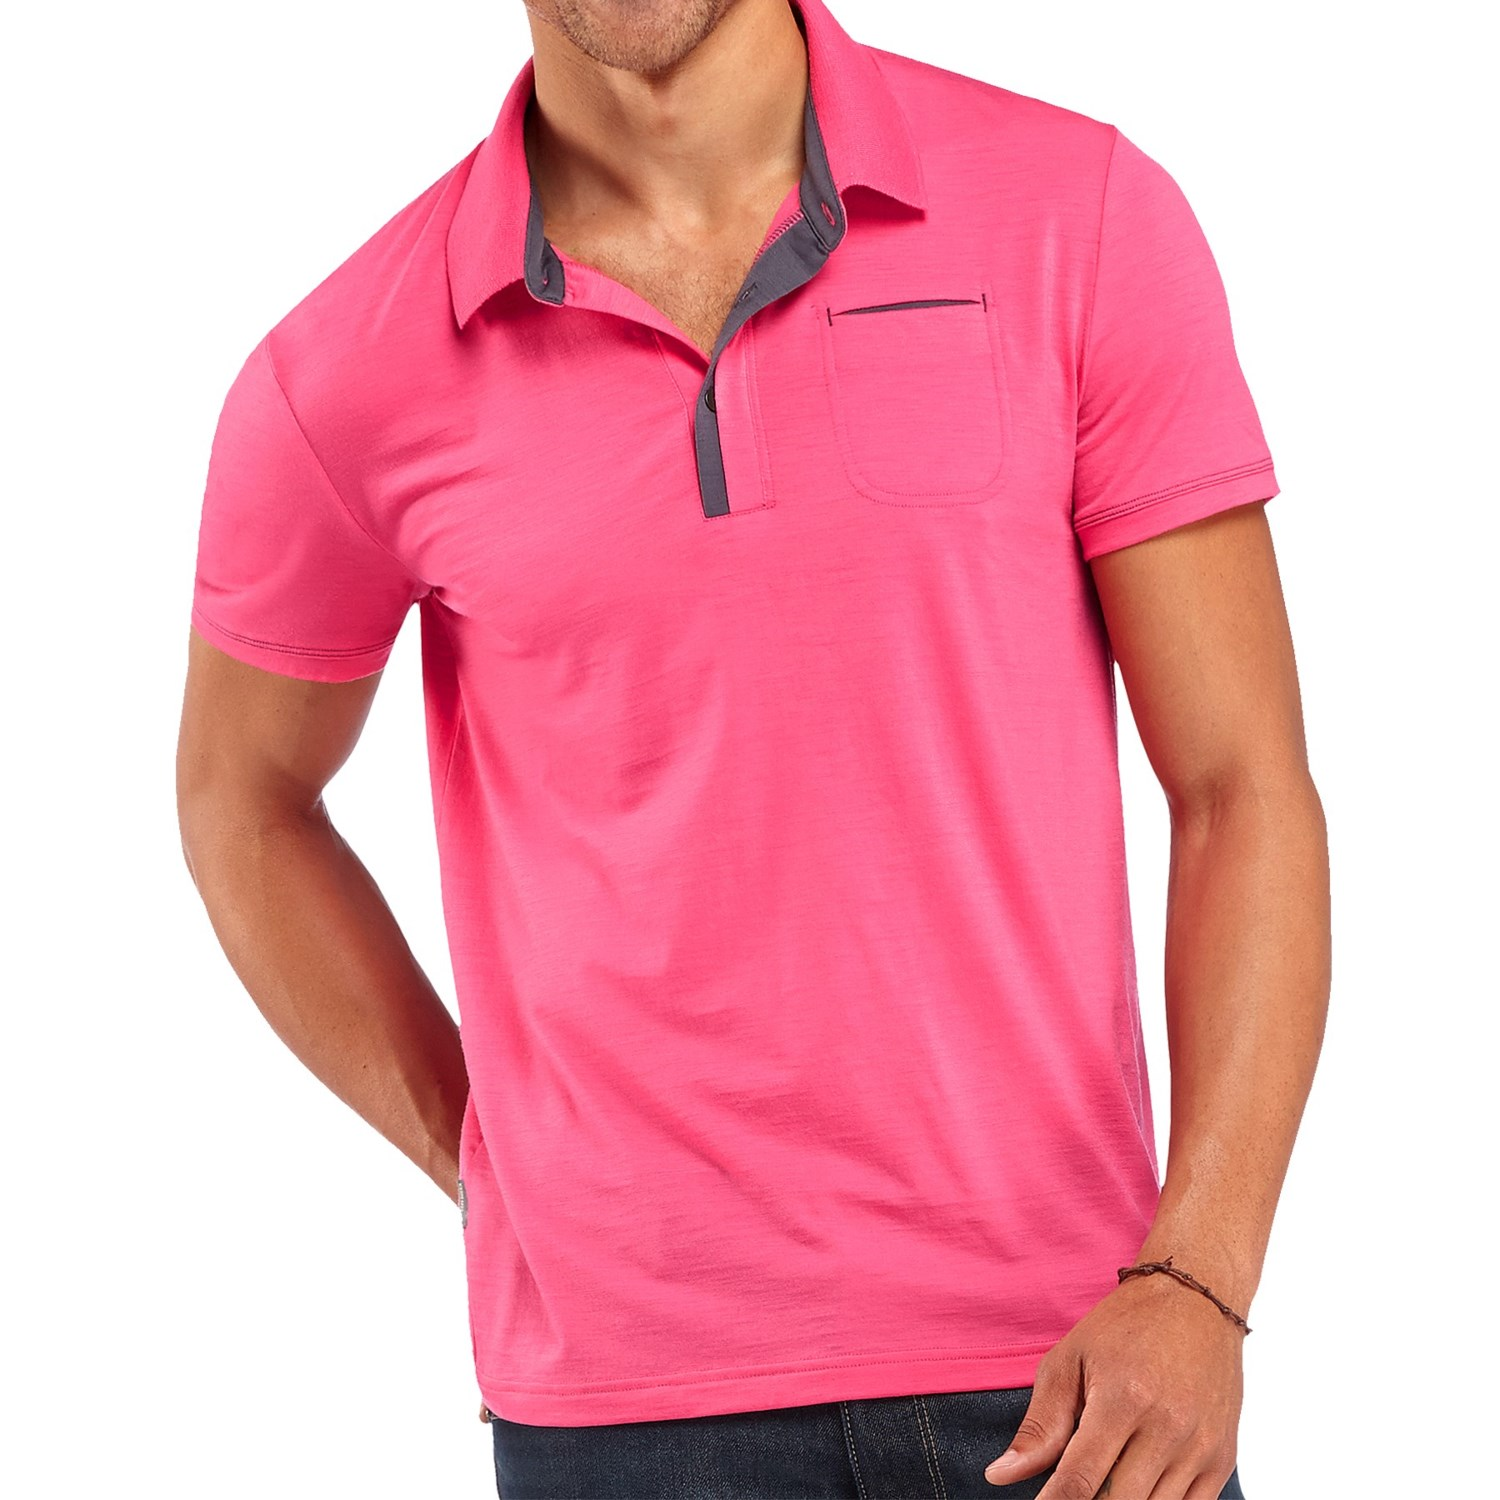 Icebreaker quattro polo shirt for men save 84 Man in polo shirt